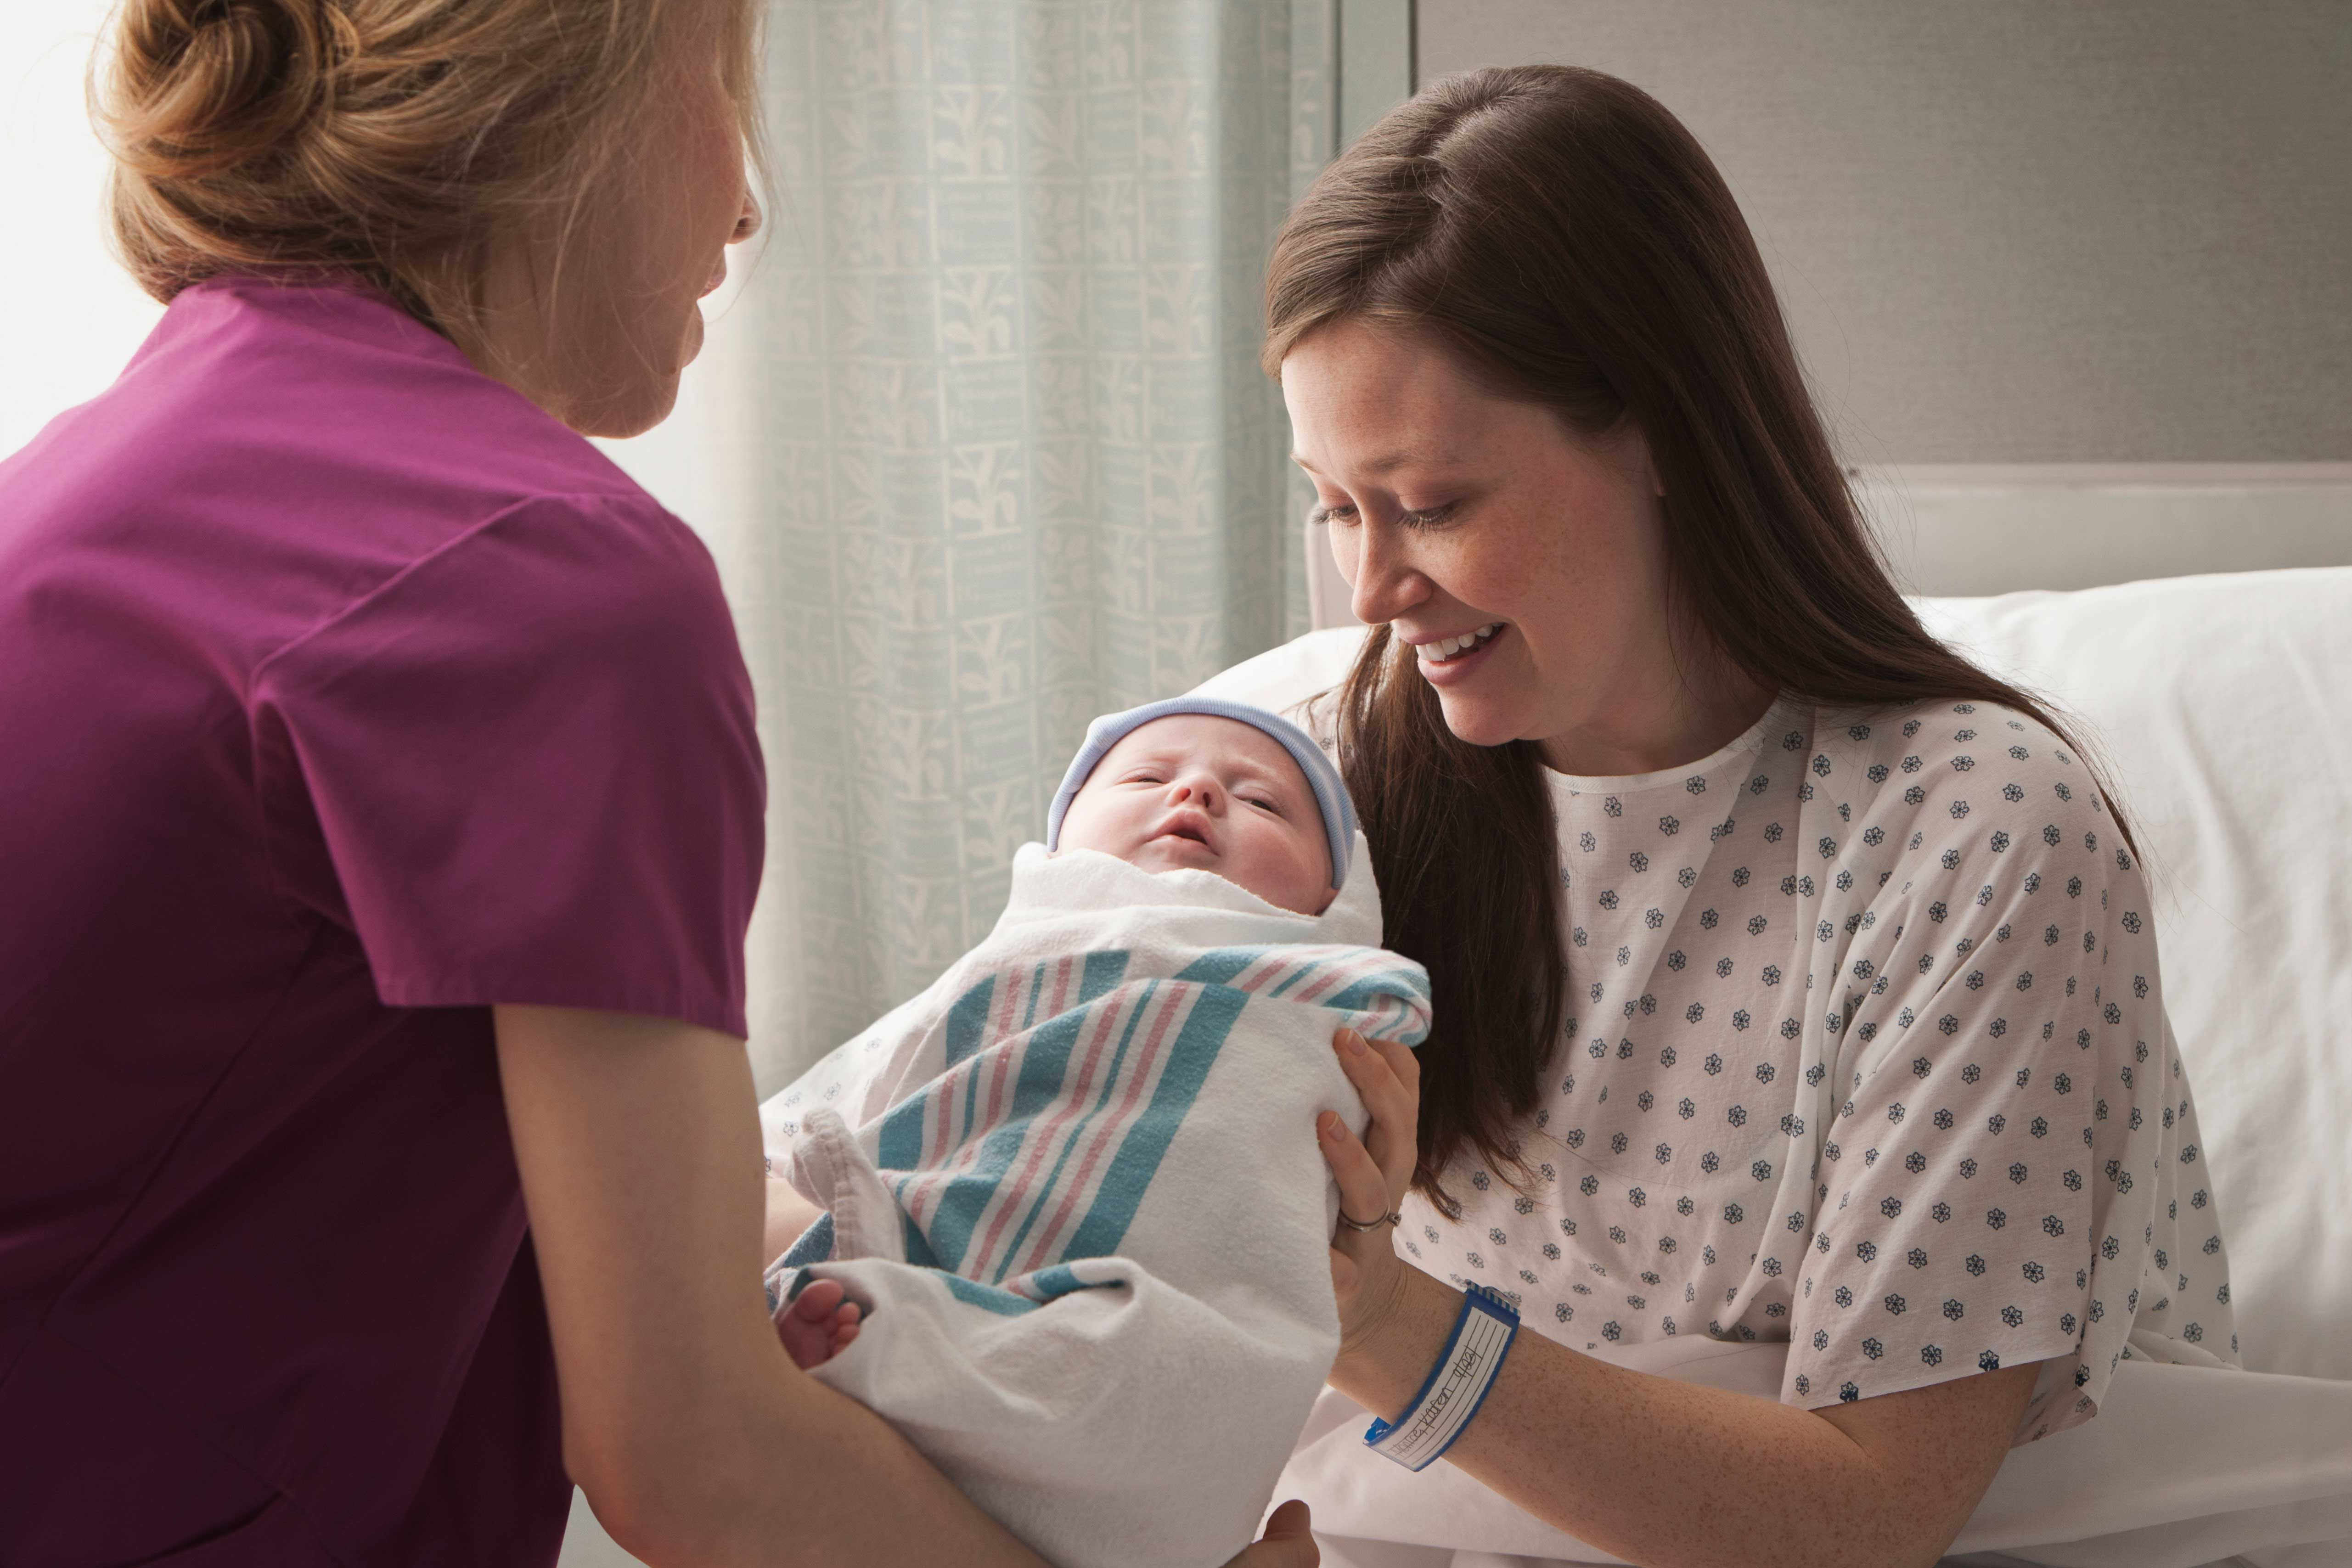 15 Things Your Labor and Delivery Nurse Wants You to Know